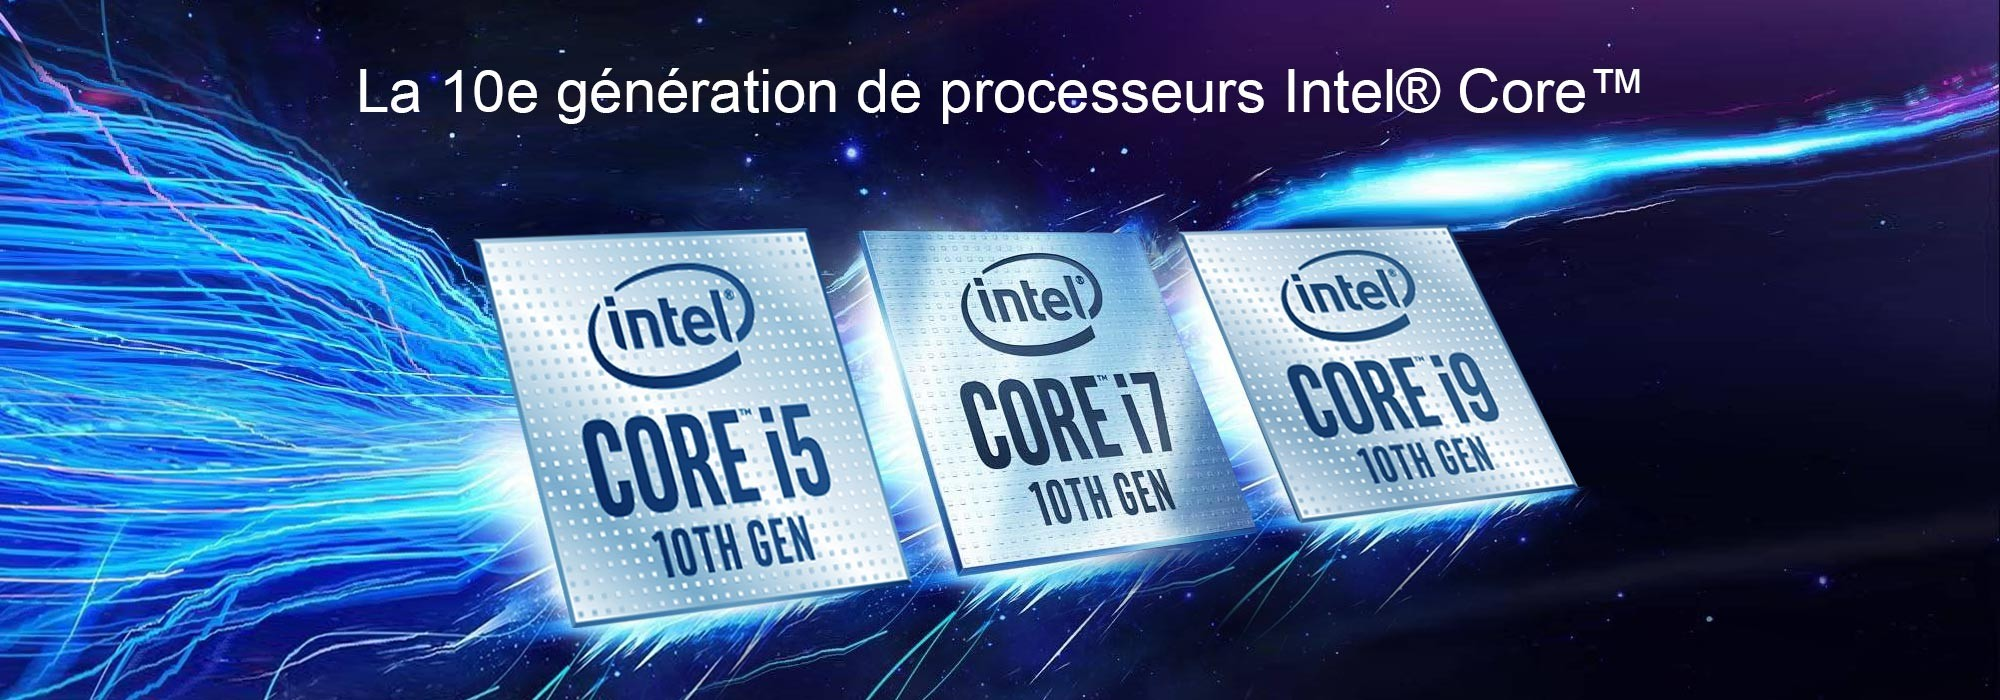 prosseseur intel 10eme generation